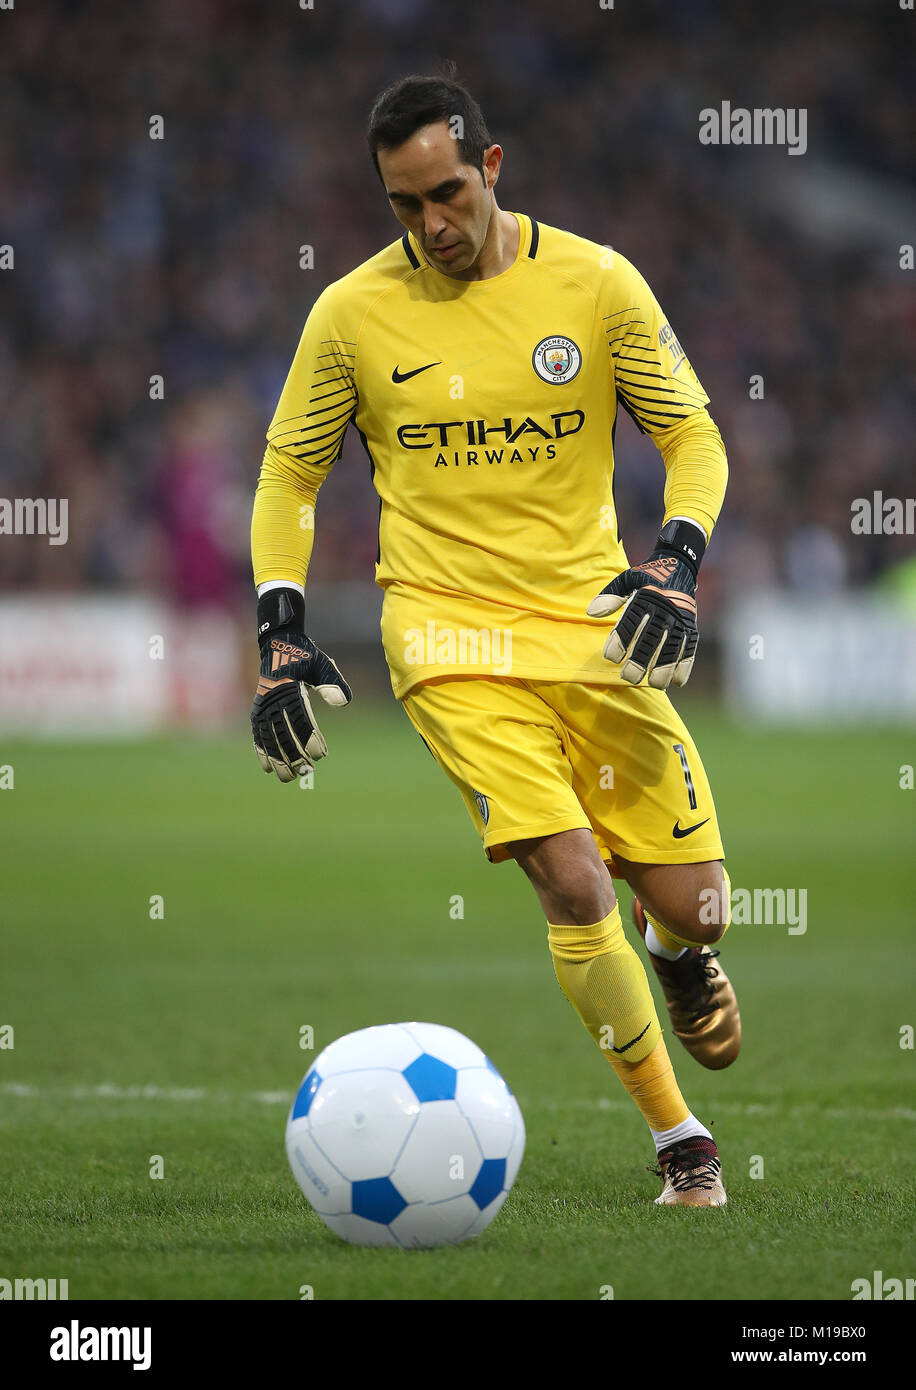 0b8fb50fe6d Manchester City goalkeeper Claudio Bravo deals with an inflatable football  during the Emirates FA Cup